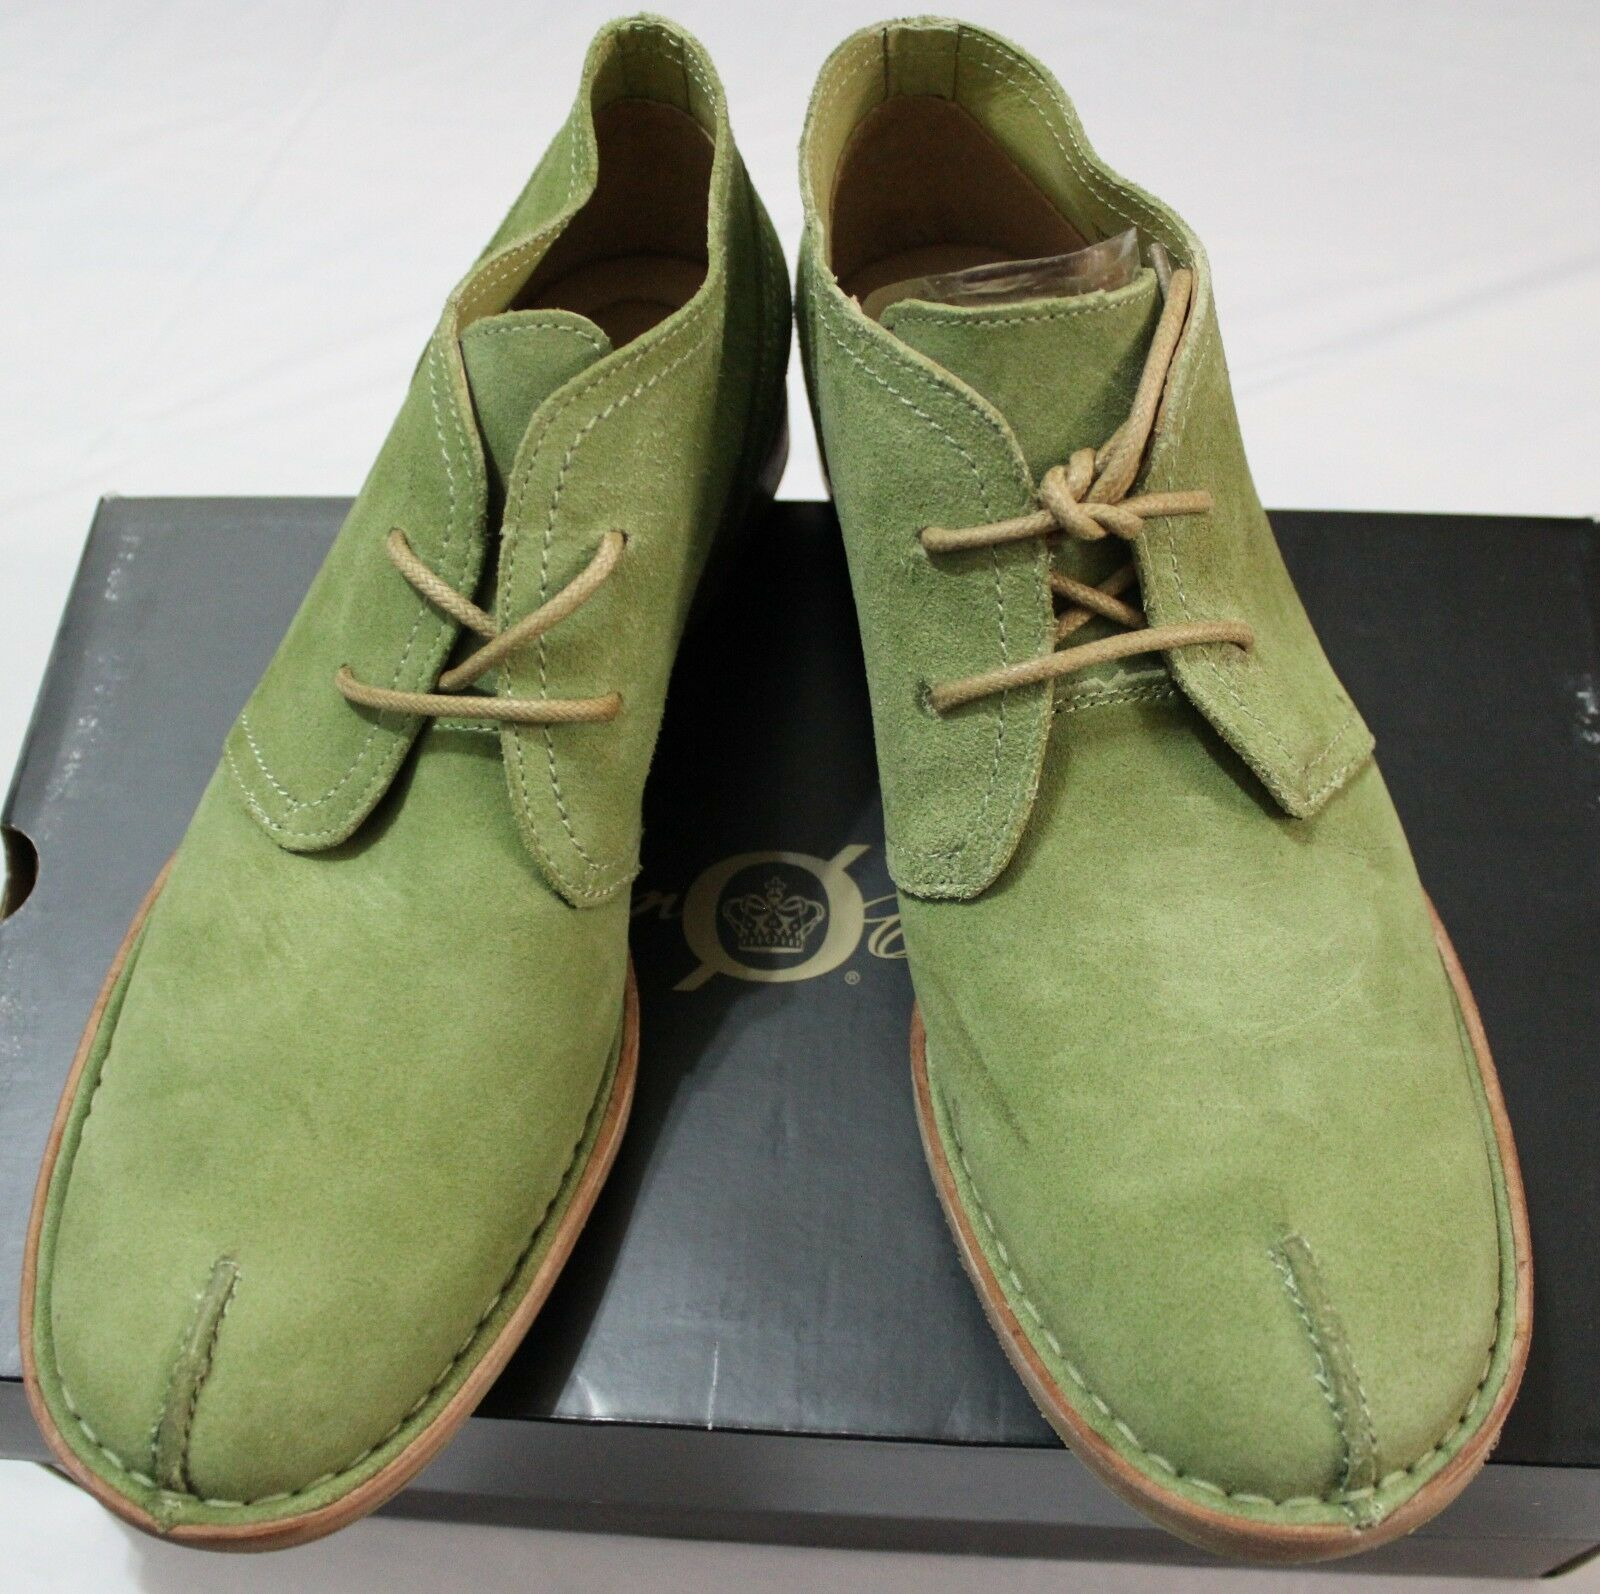 185 BORN GABE ZYDECO GREEN SUEDE CHUKKA BOOT US 9M  EUR 42.5